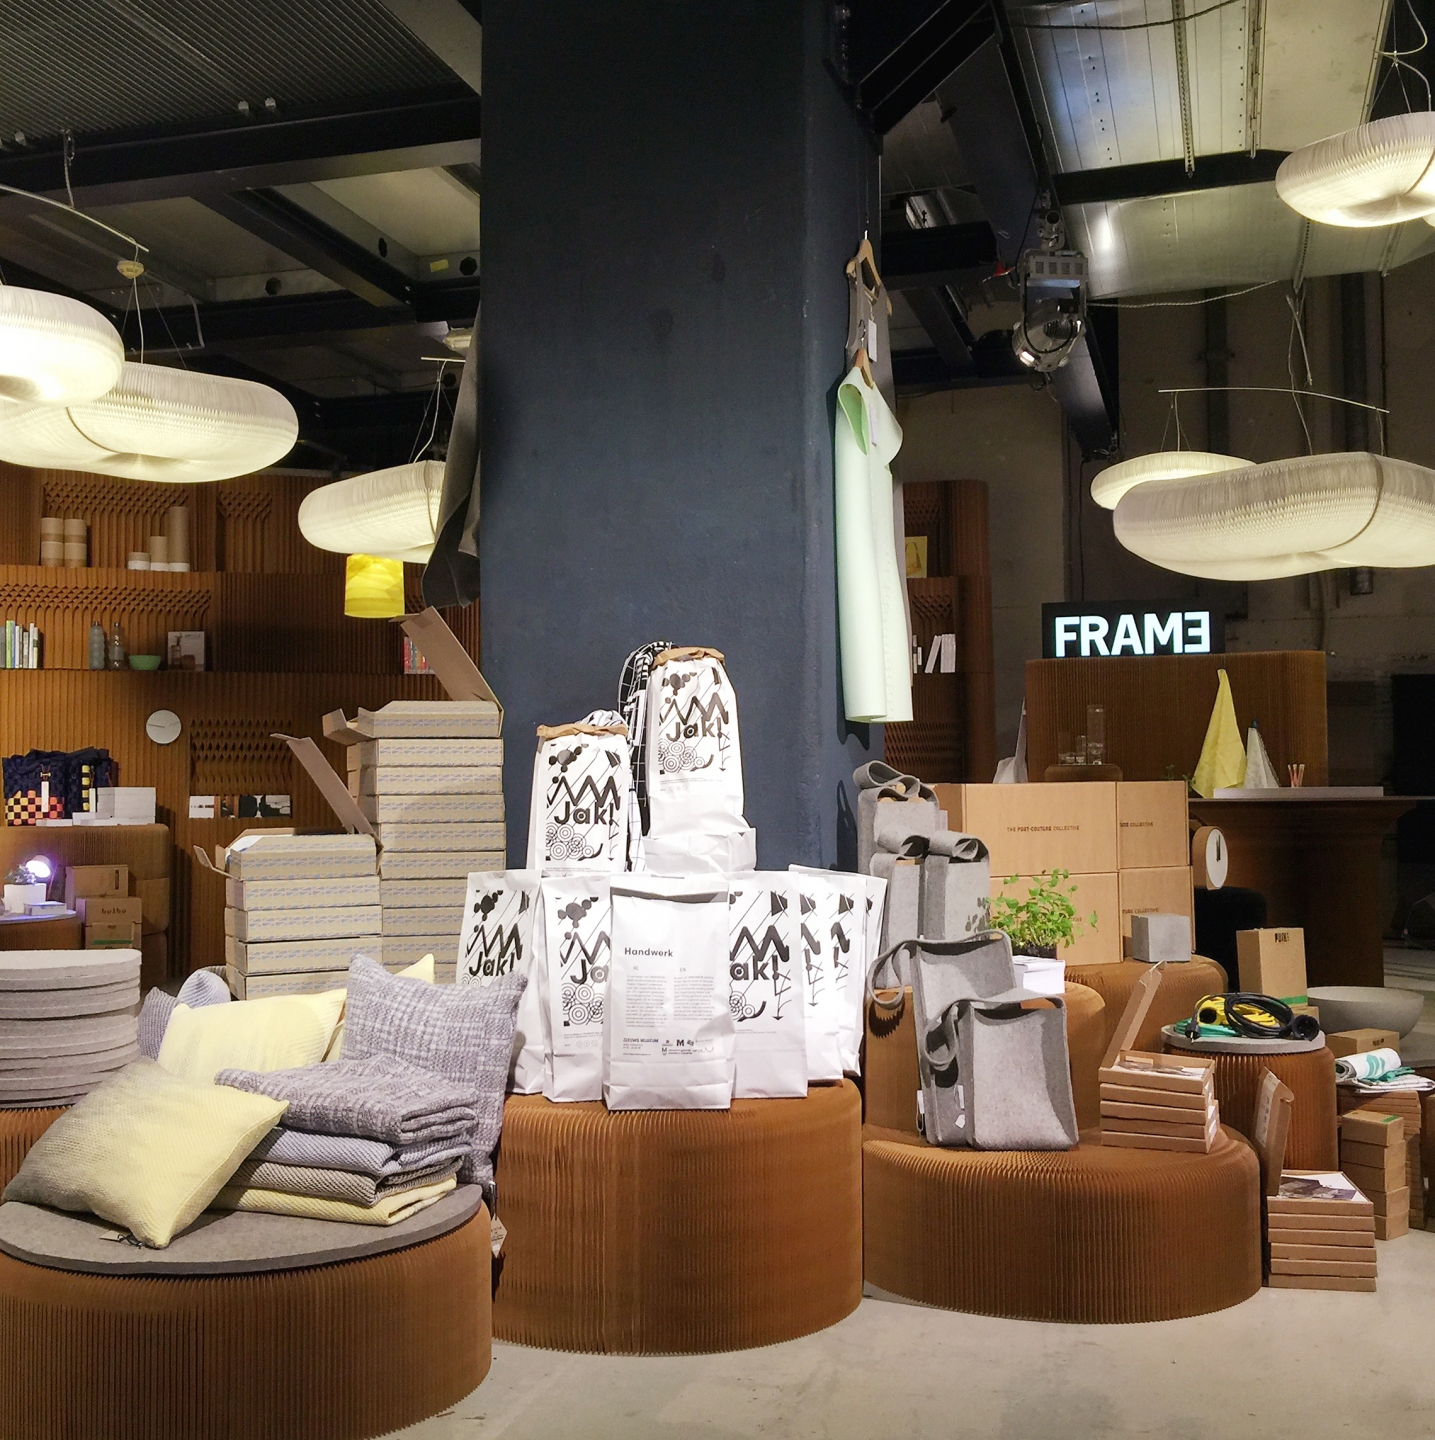 expandable paper seating and furniture by molo - molo's various table and seating elements easily double as surfaces for product display, as in this booth for FRAME Magazine